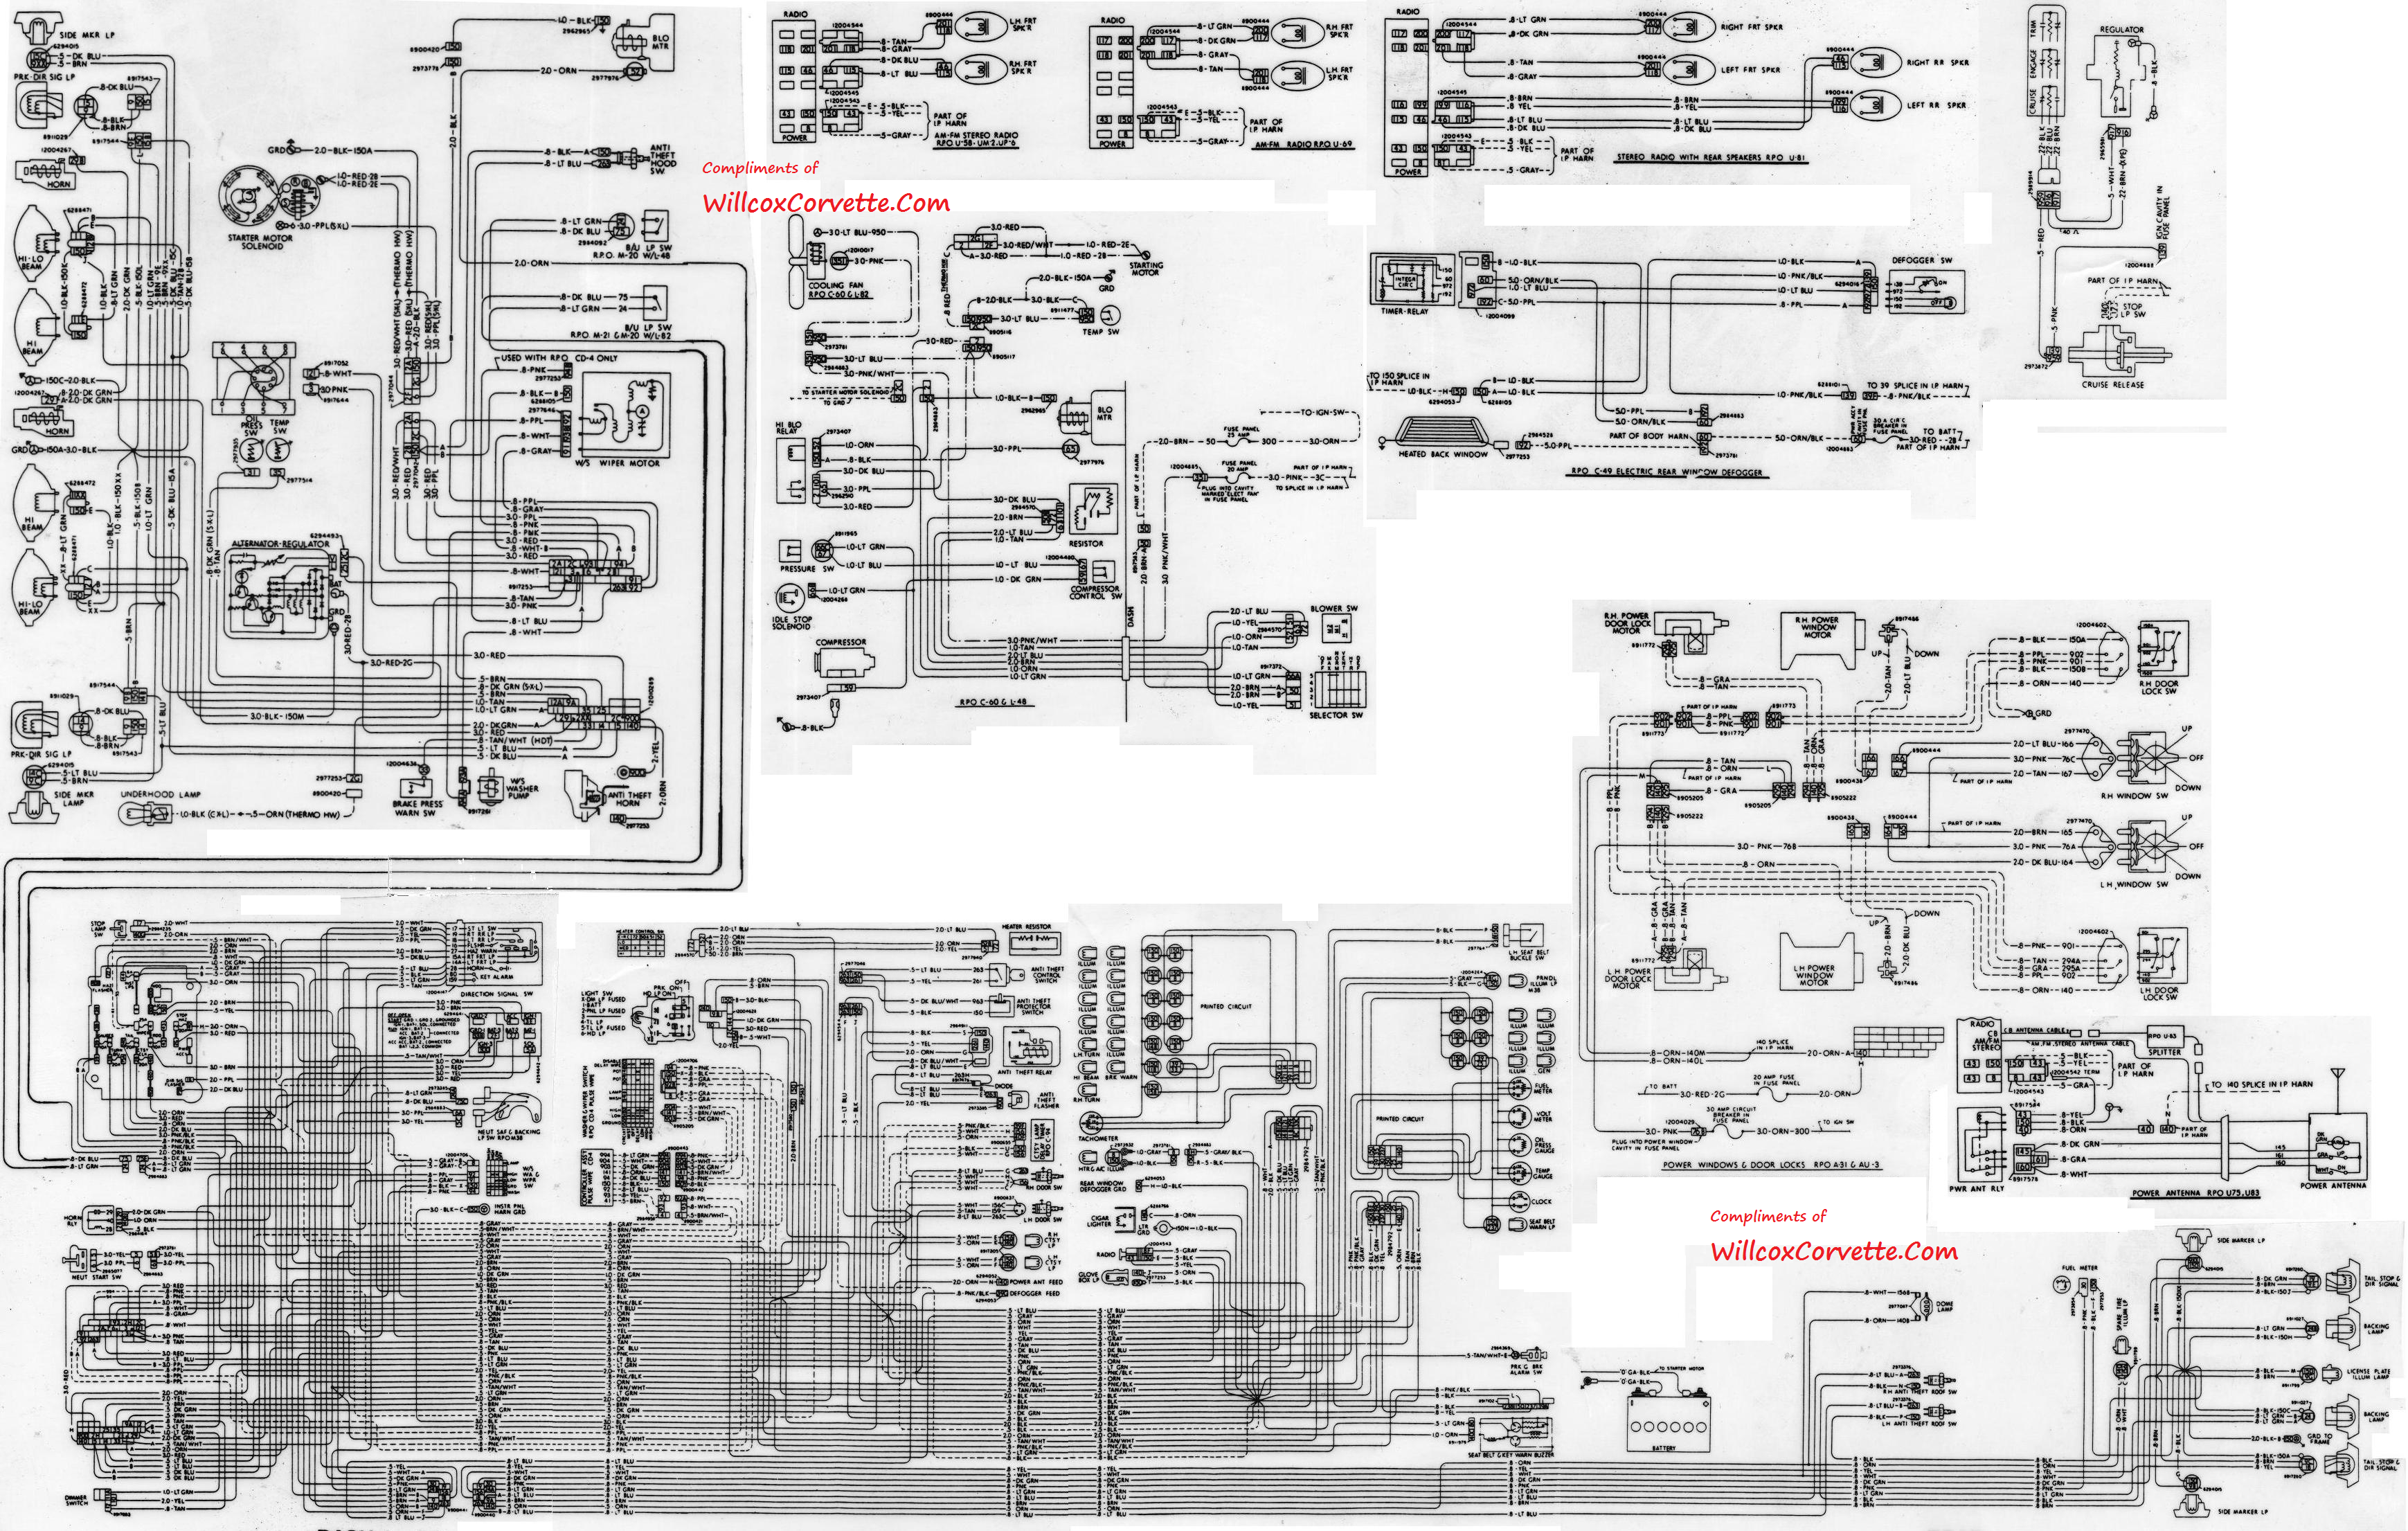 79 COMBINED TRACER SCHEMATIC 1979 wiring diagram corvetteforum chevrolet corvette forum c3 corvette wiring diagram at crackthecode.co